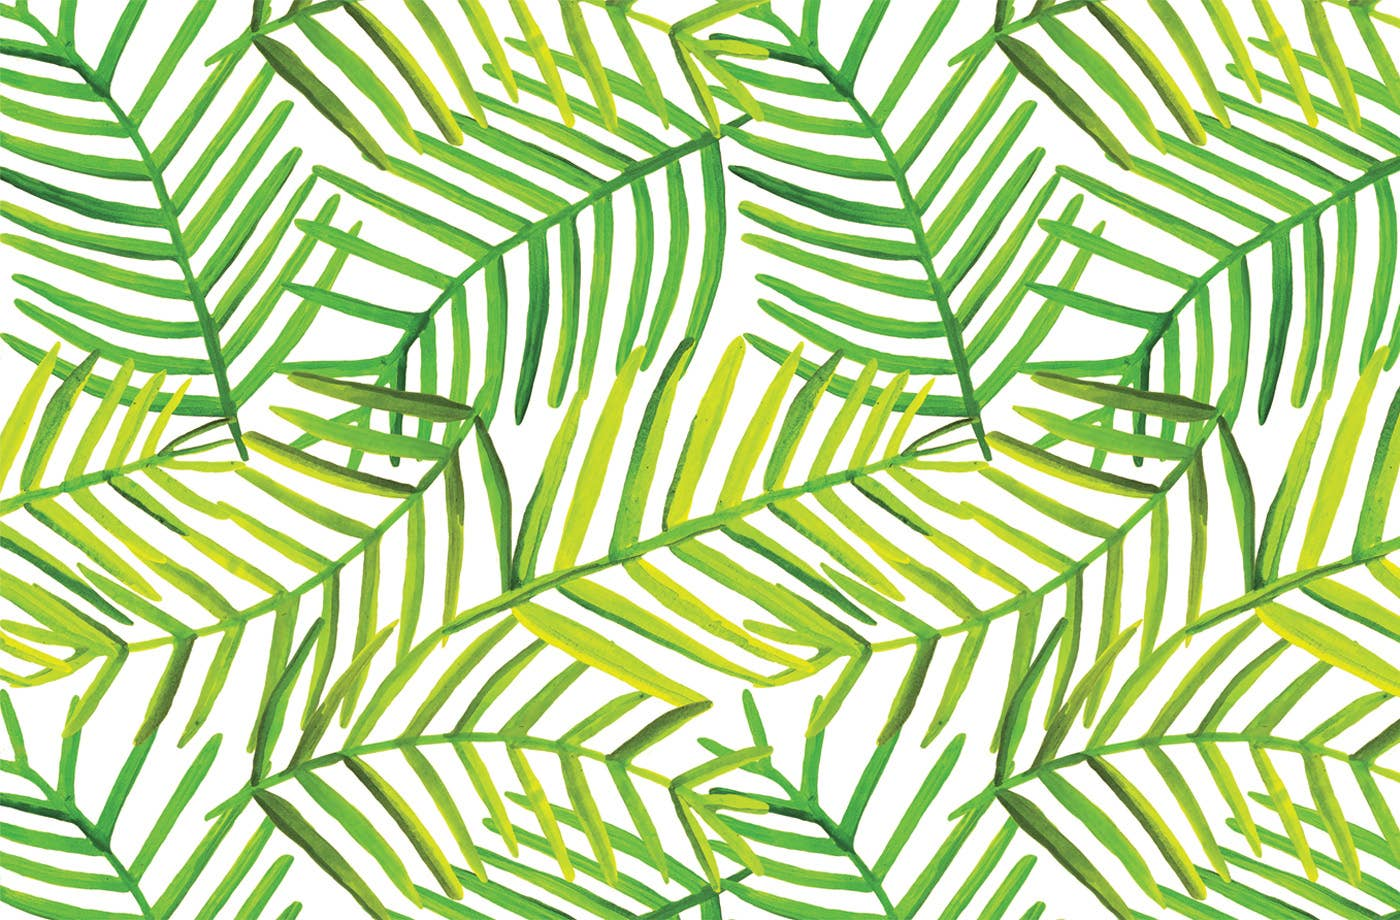 Lucy Grymes Designs - Green Leaf Paper Placemat Pad